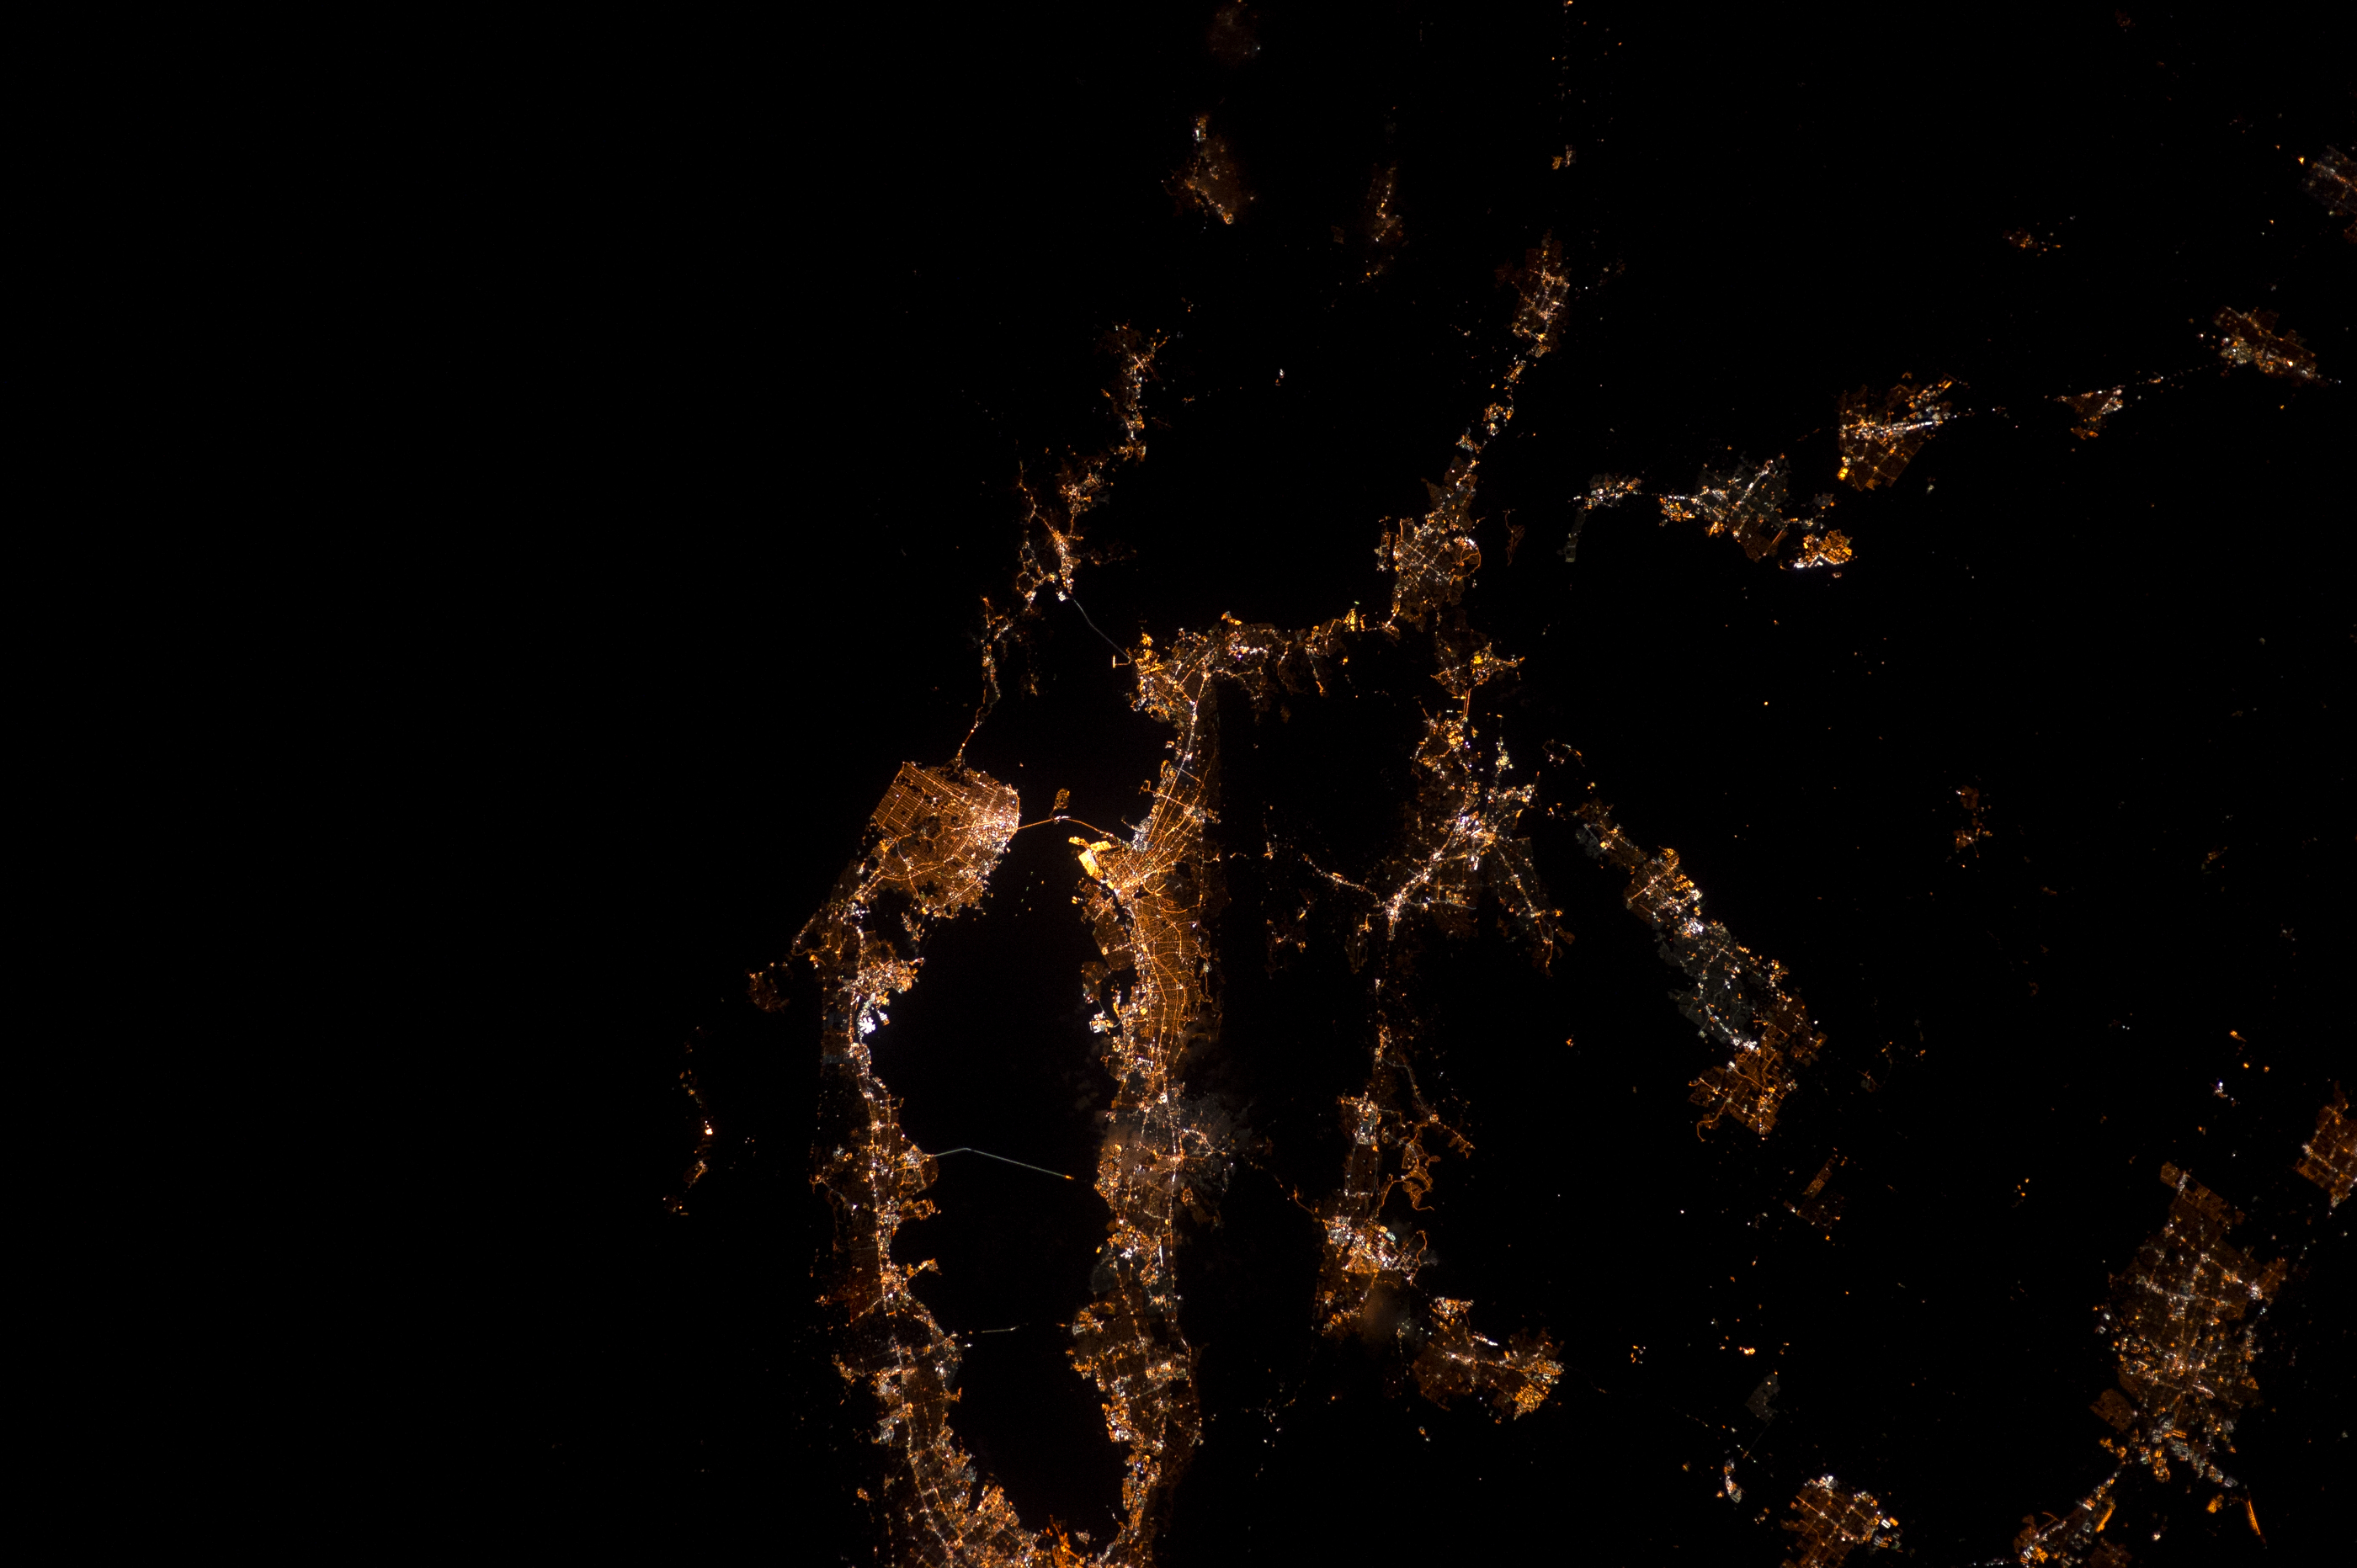 The San Francisco Bay Area seen at night. Credit: Donald Pettit/NASA